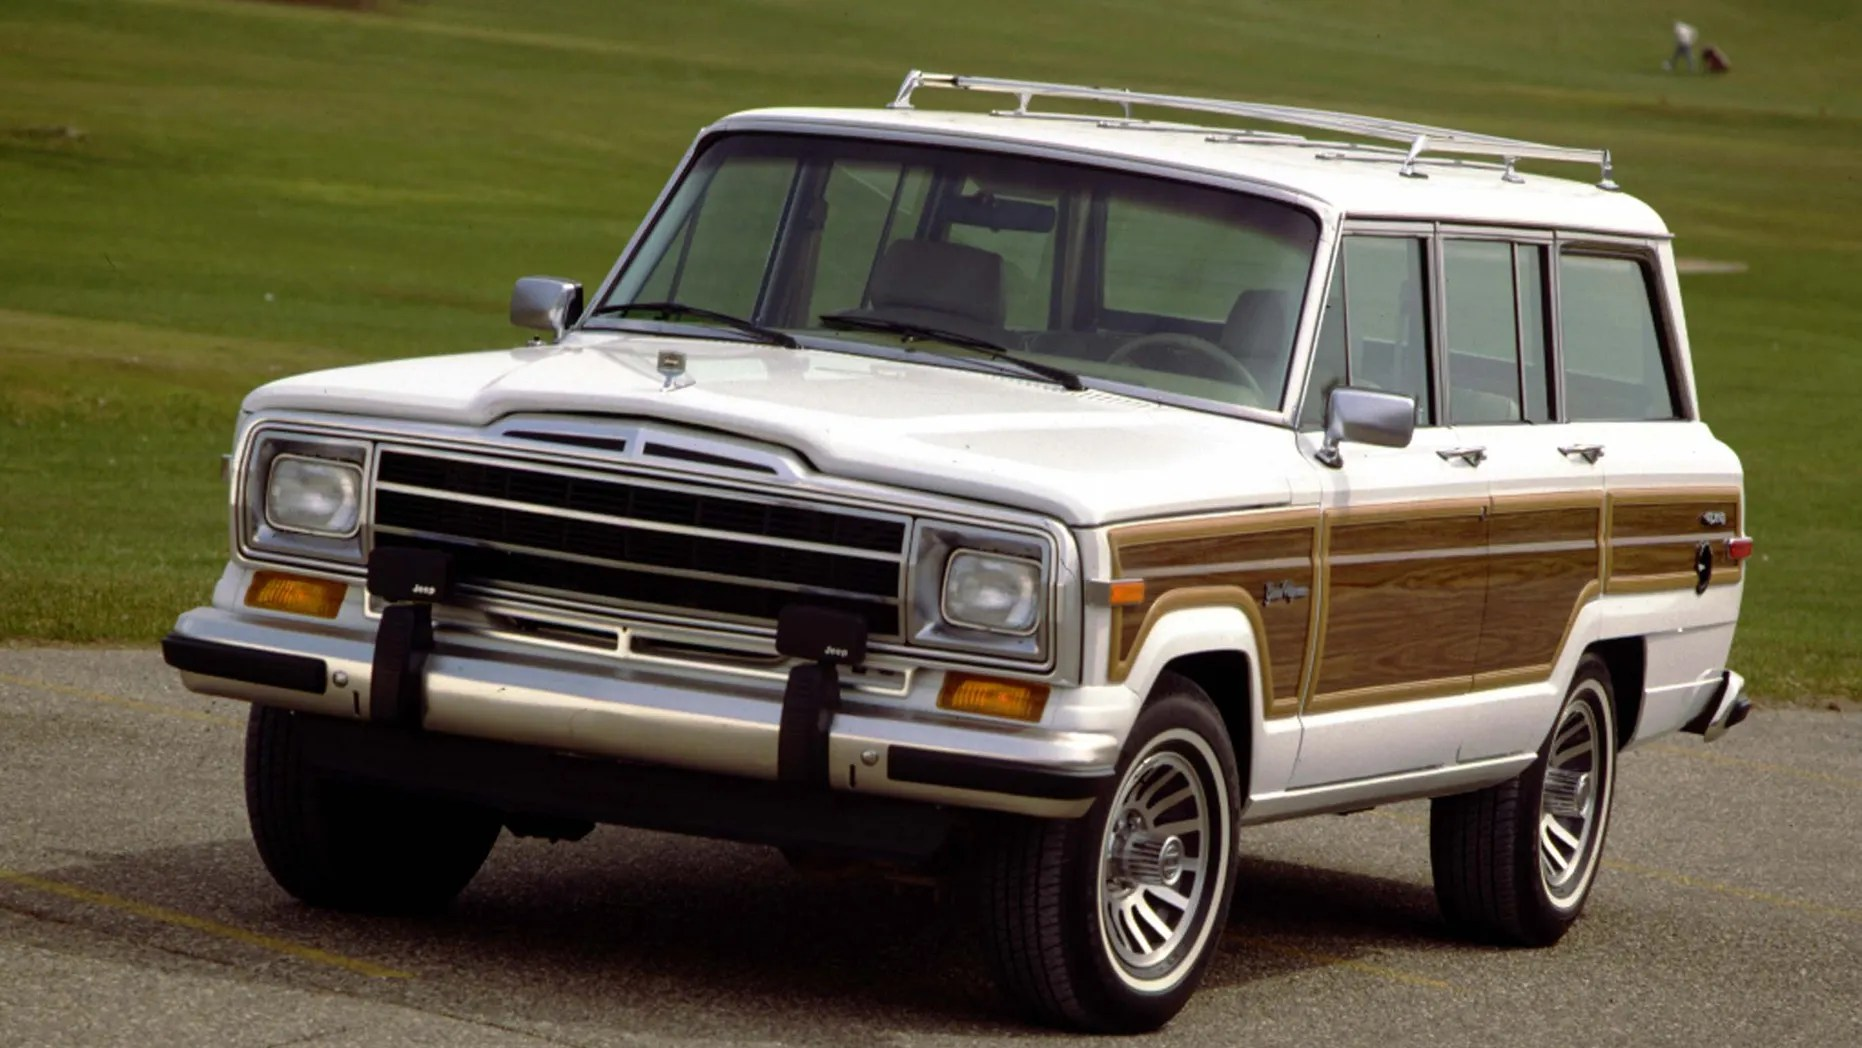 hight resolution of wagoneer ho jeep confirms return of legendary suv